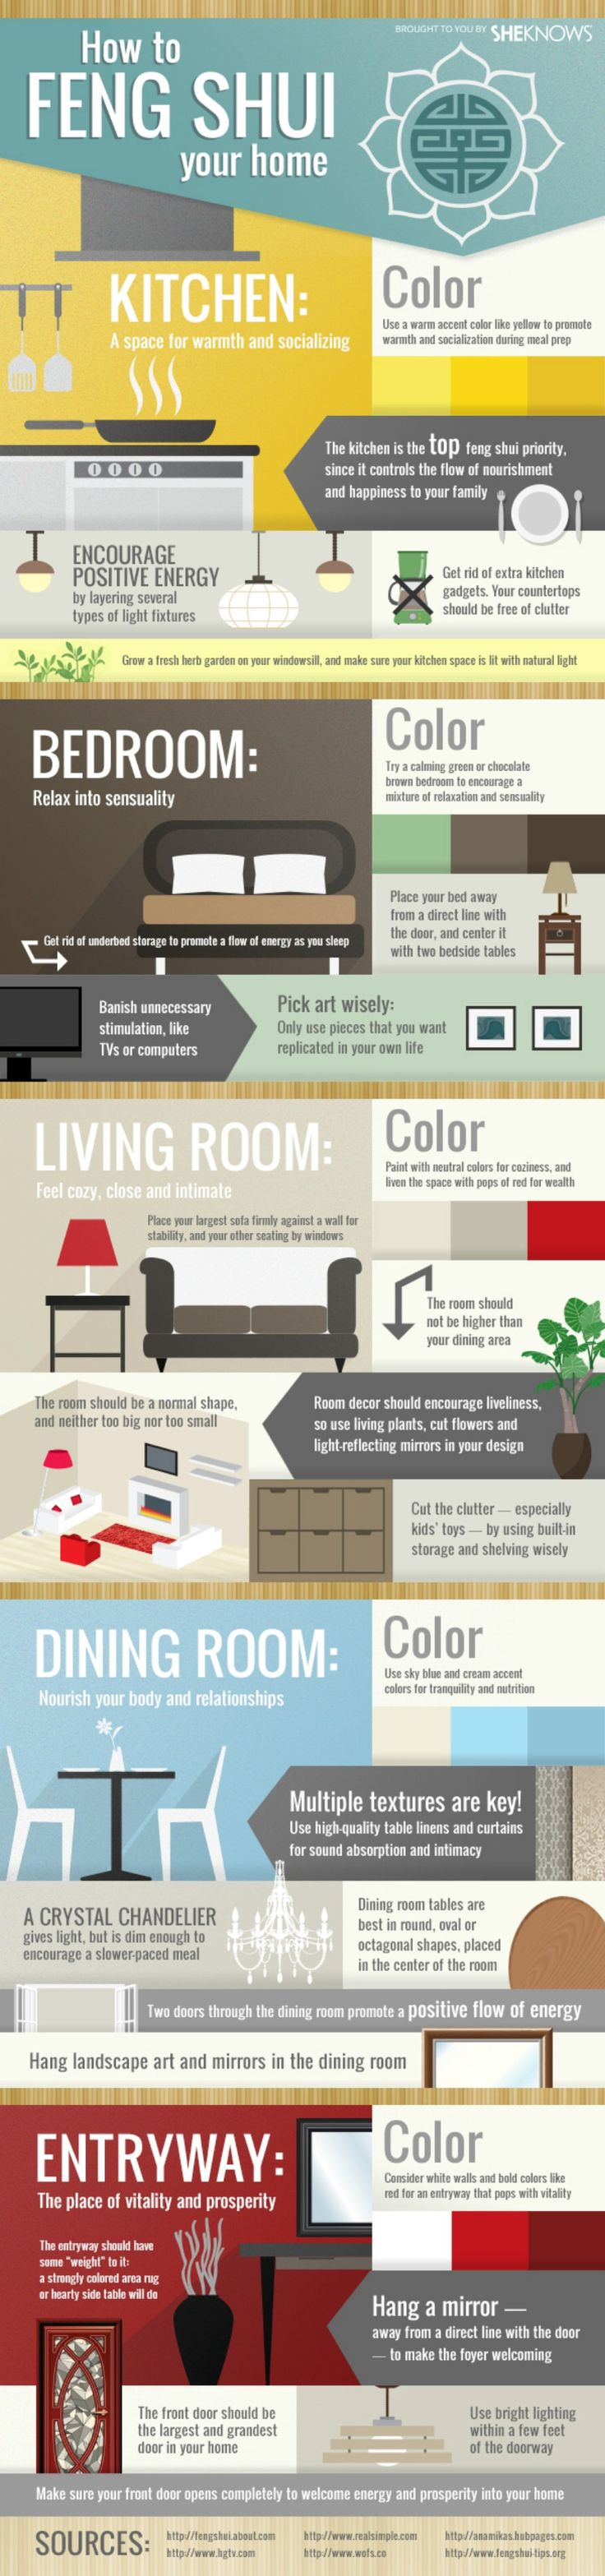 Best 25+ Decorating websites ideas on Pinterest | Decorate a room ...